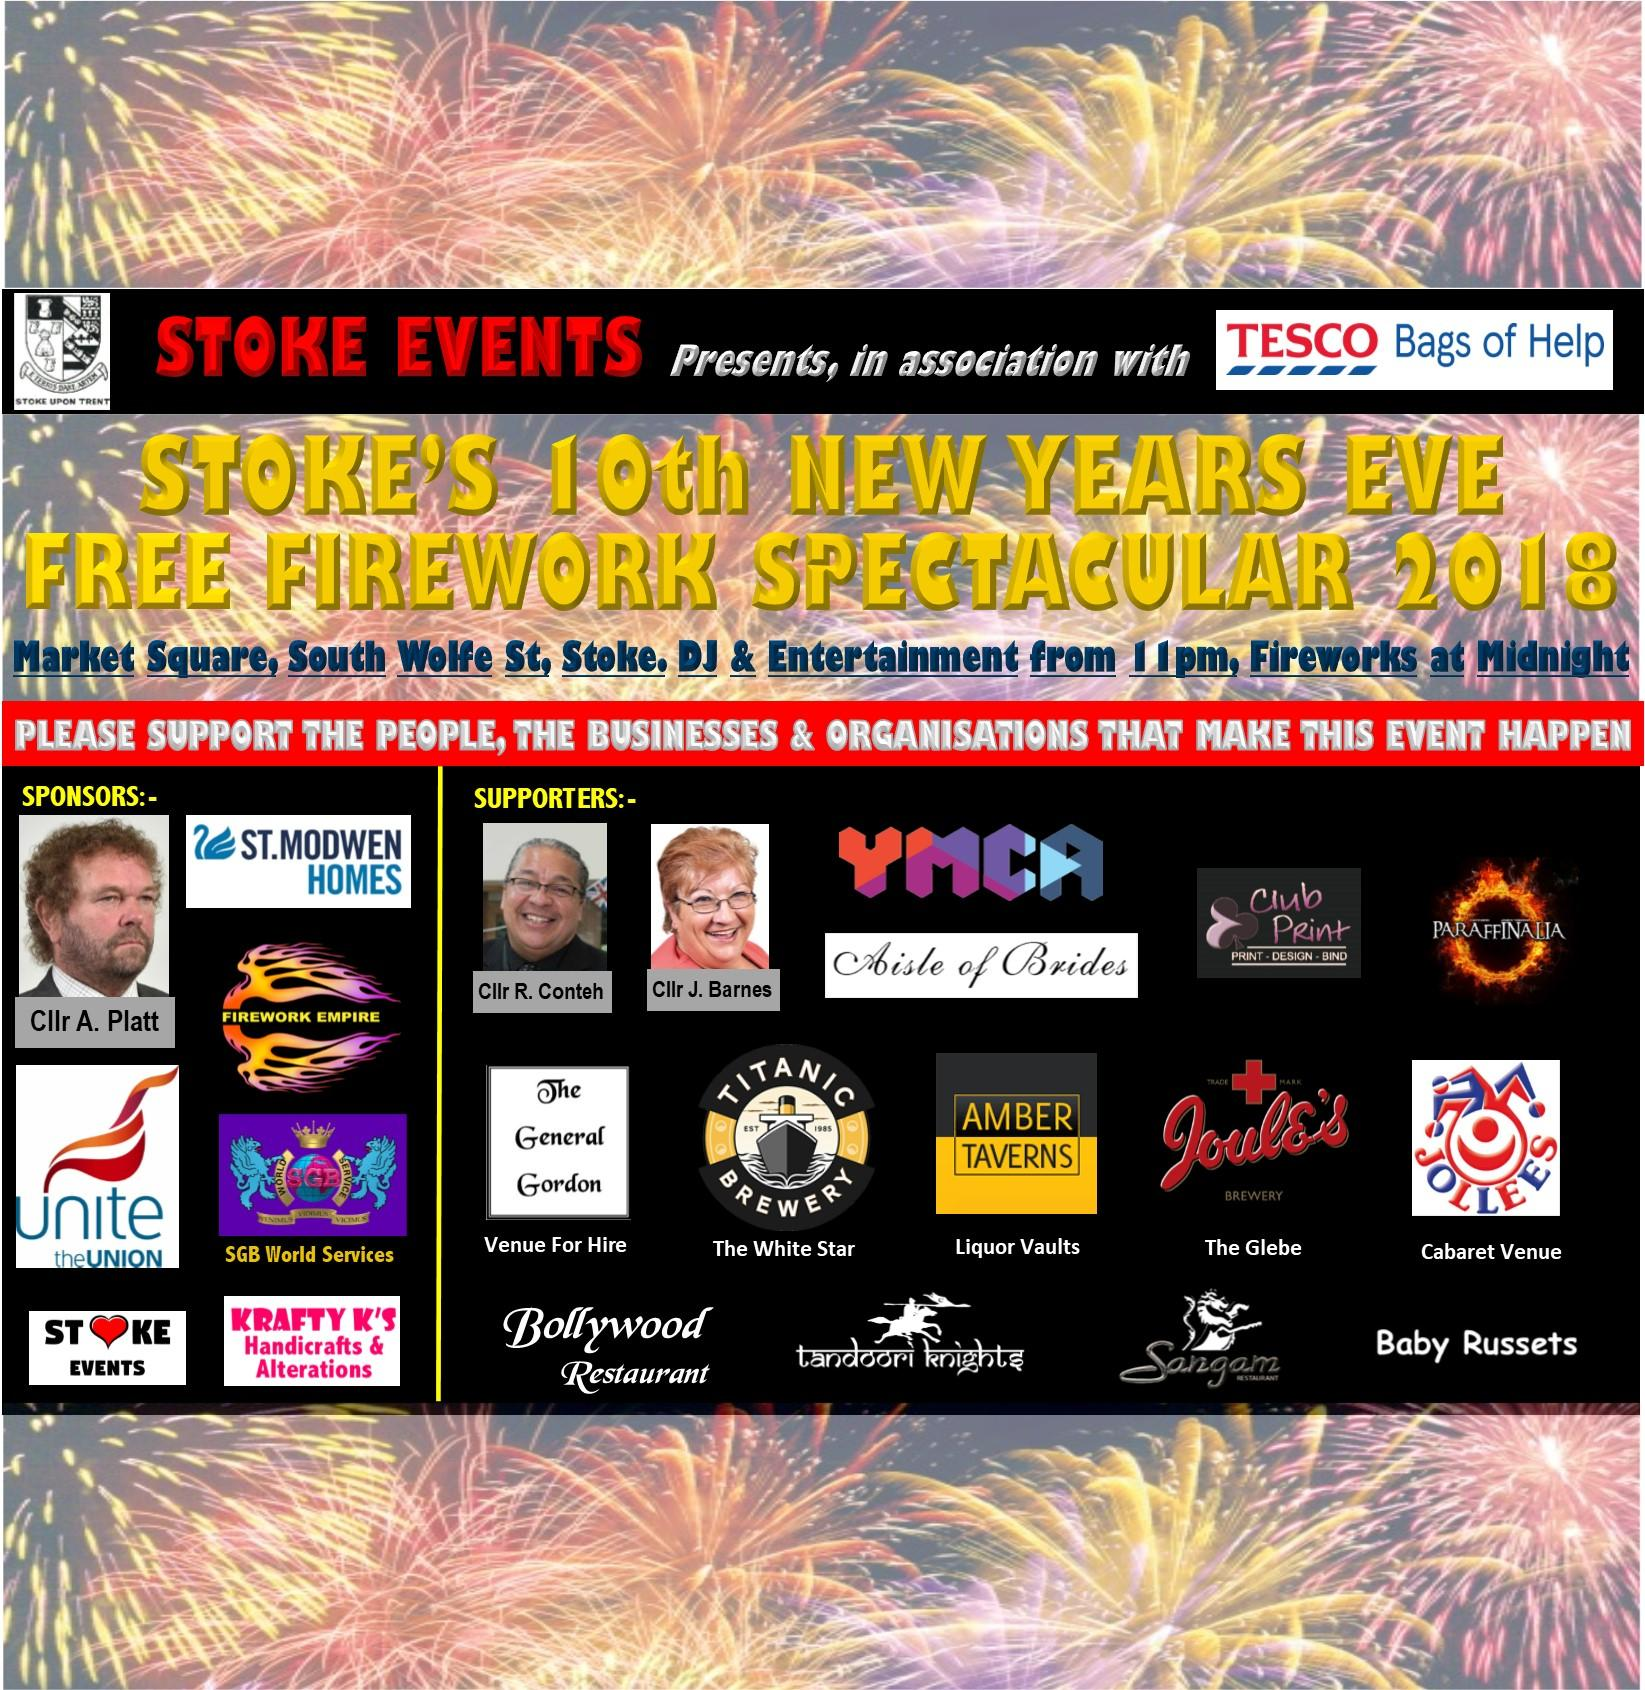 new years eve free firework display tickets stoke town market